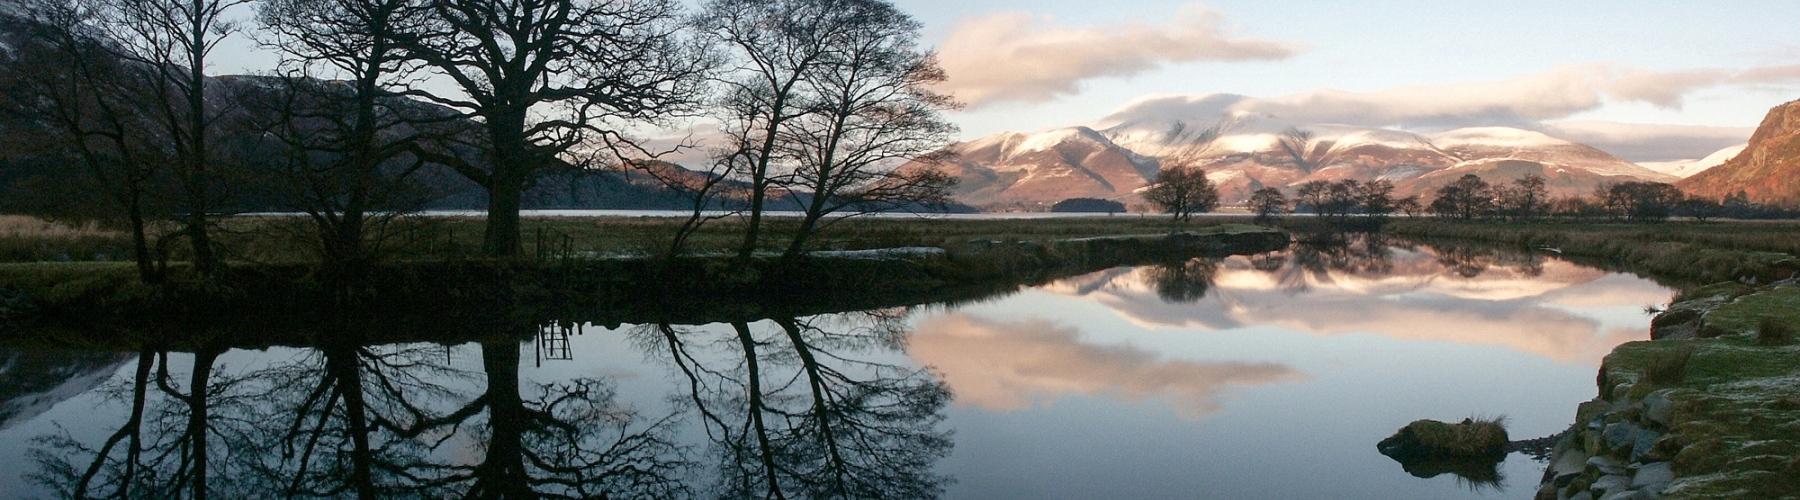 P0019-River-Derwent-with-reflections-of-Skiddaw